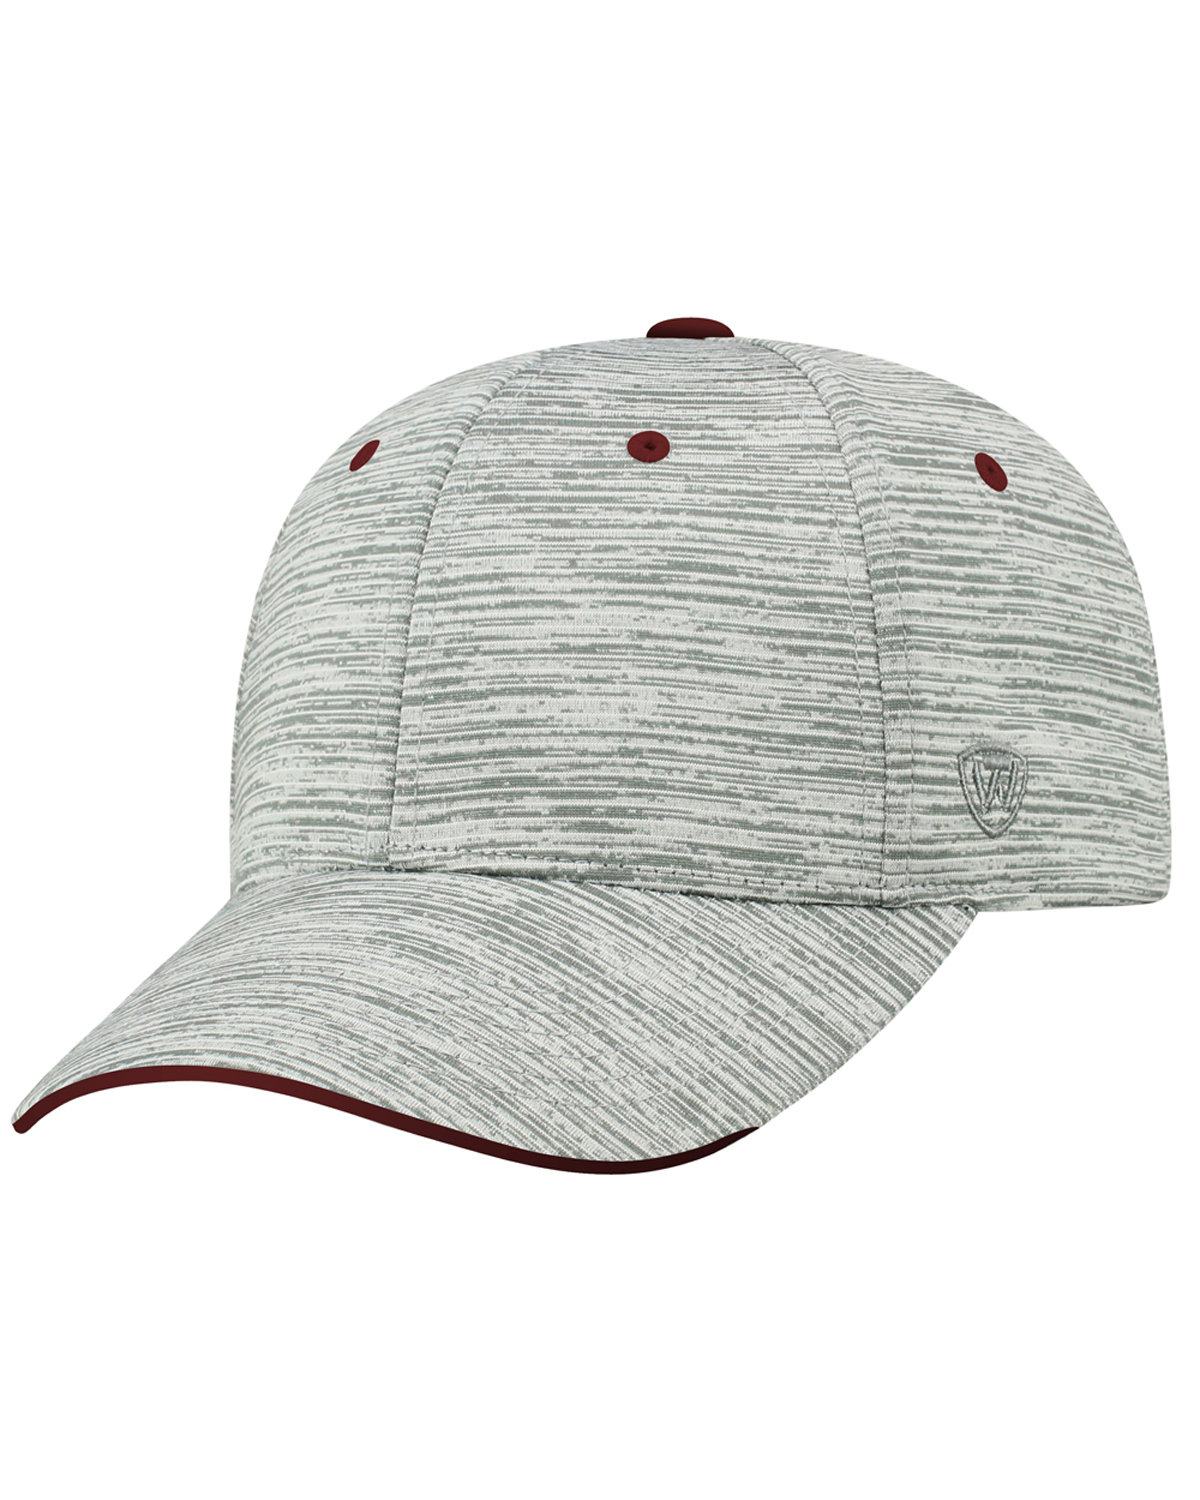 Top Of The World Adult Ballaholla Cap BURGUNDY